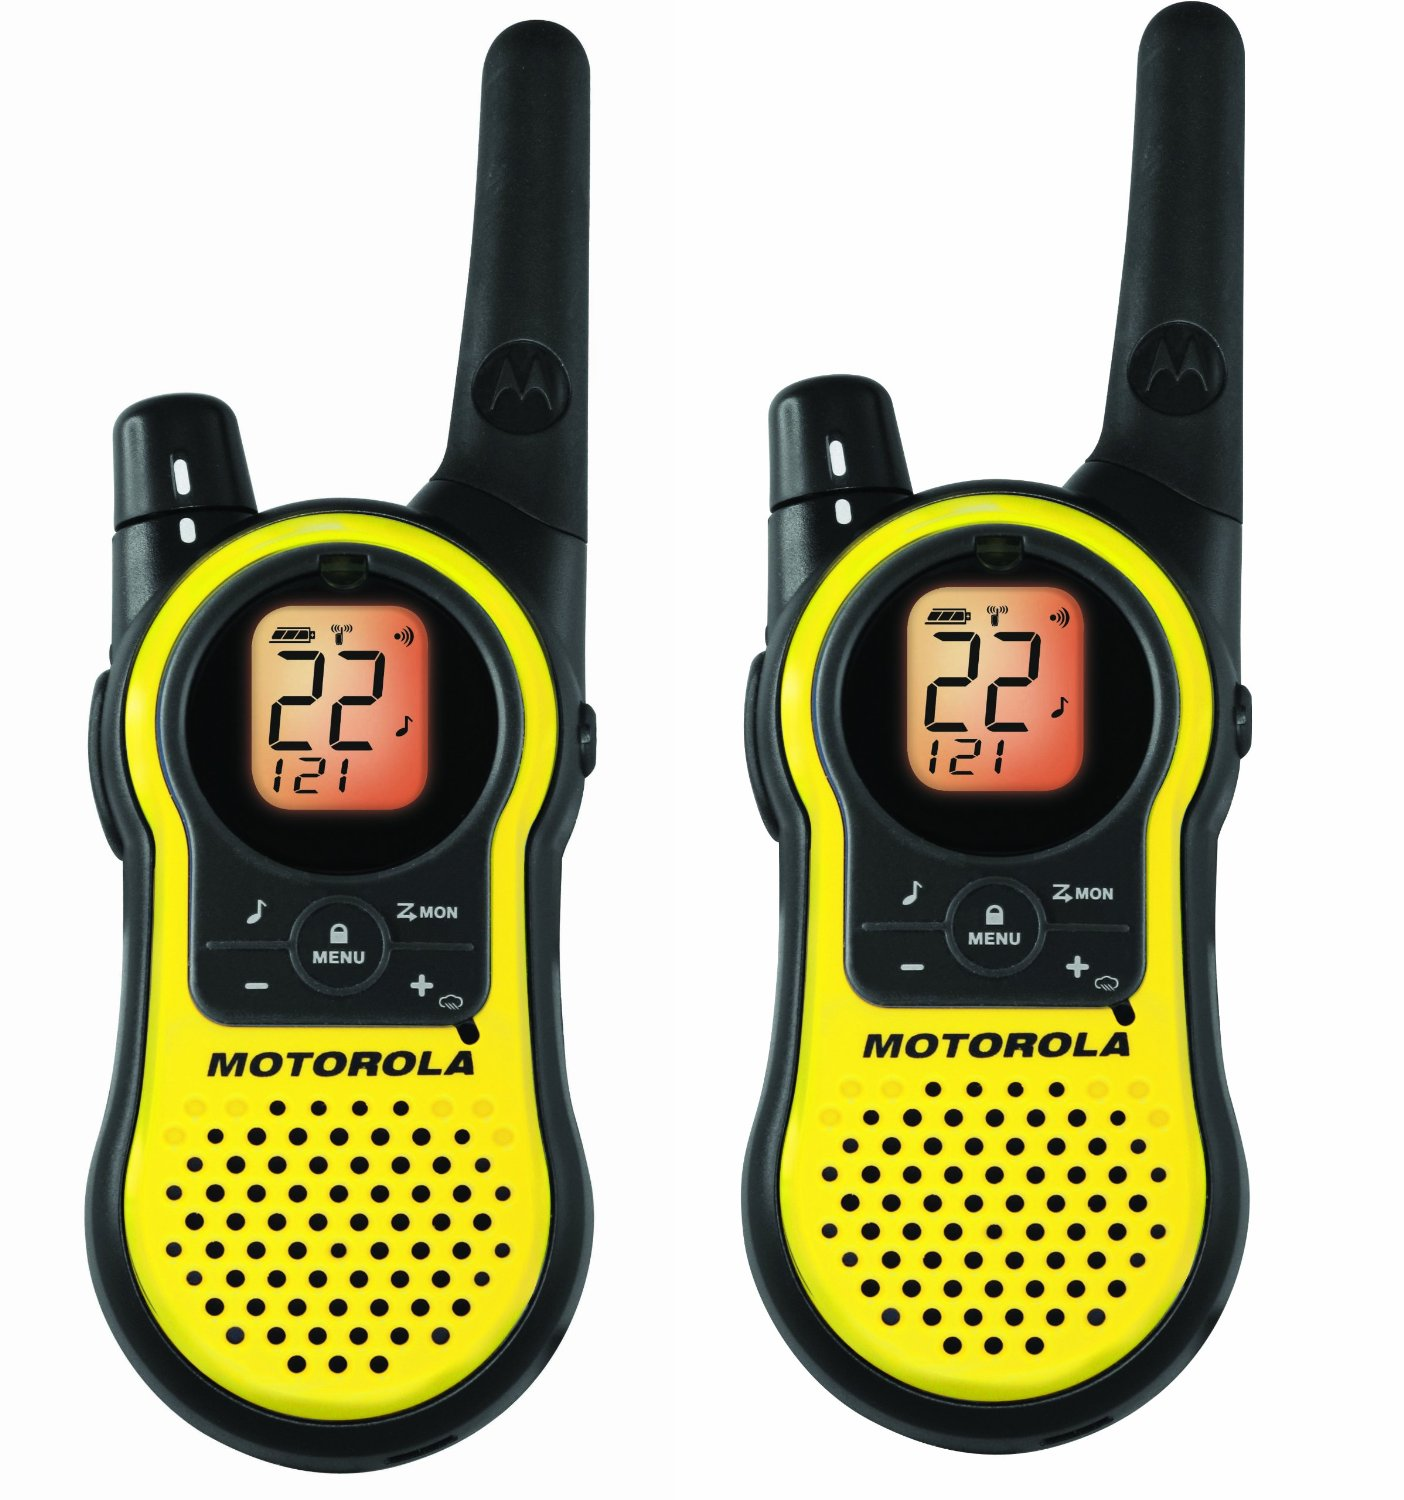 Motorola MH230R two Way Radios